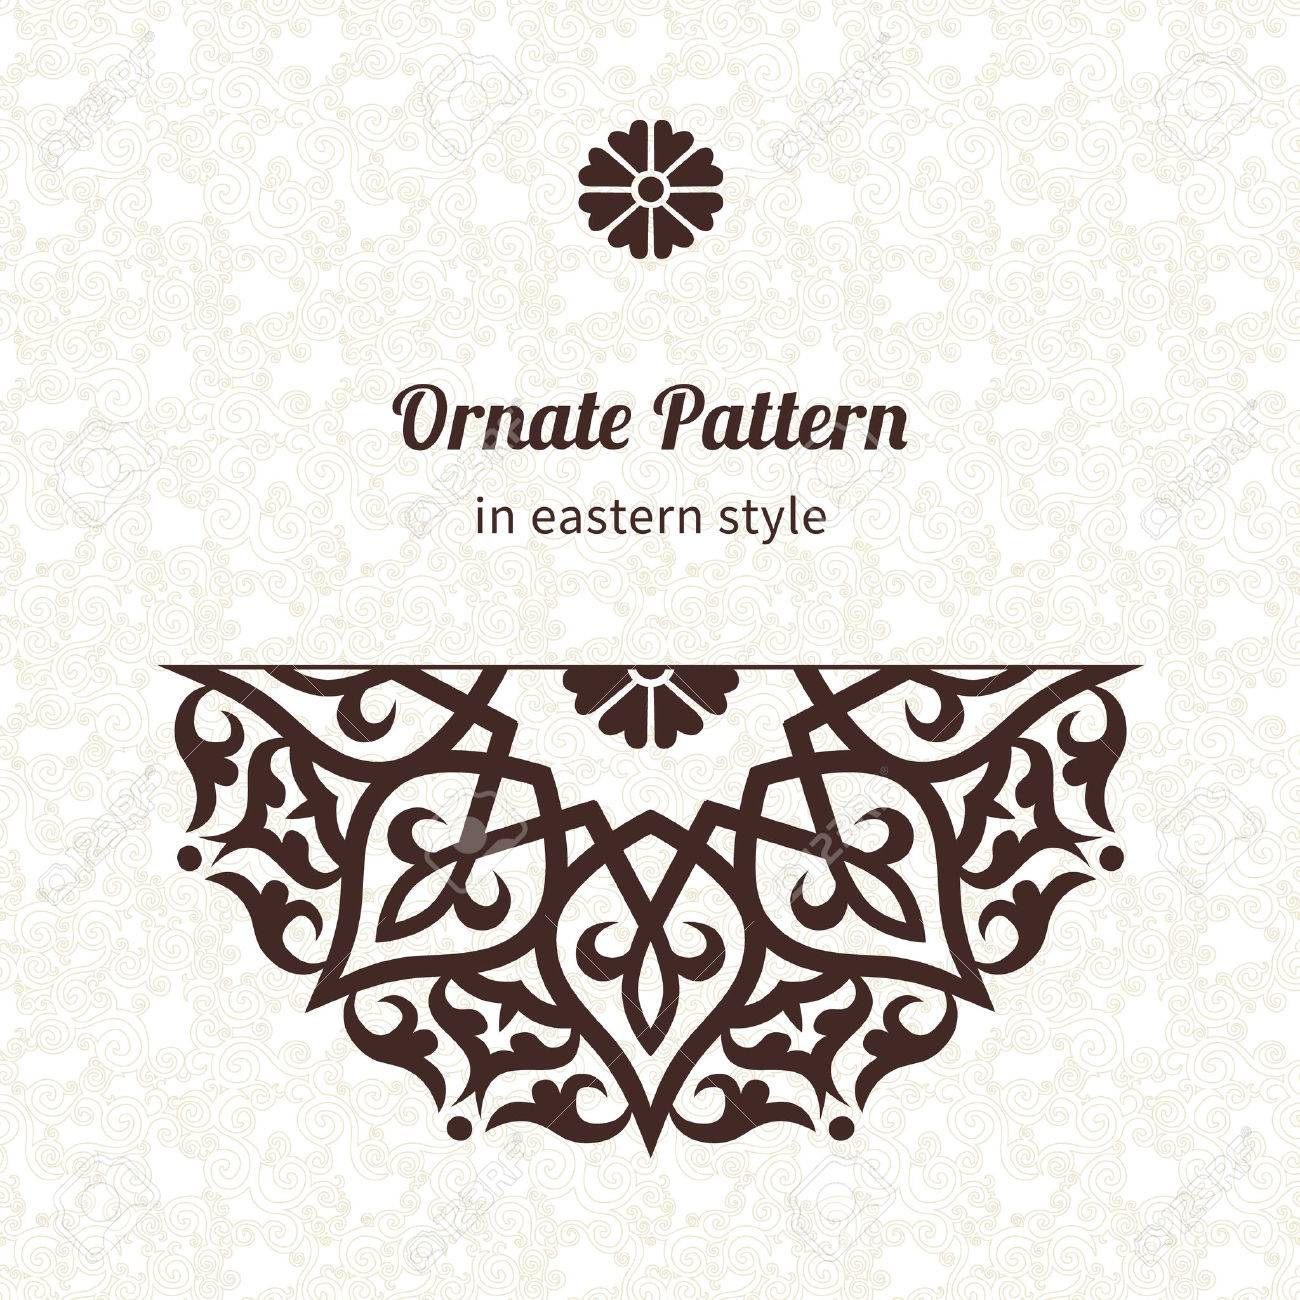 Vector lace pattern in Eastern style on scroll work background. Ornate element for design. Place for text. Ornamental pattern for wedding invitations, greeting cards. Traditional outline decor. - 35239911